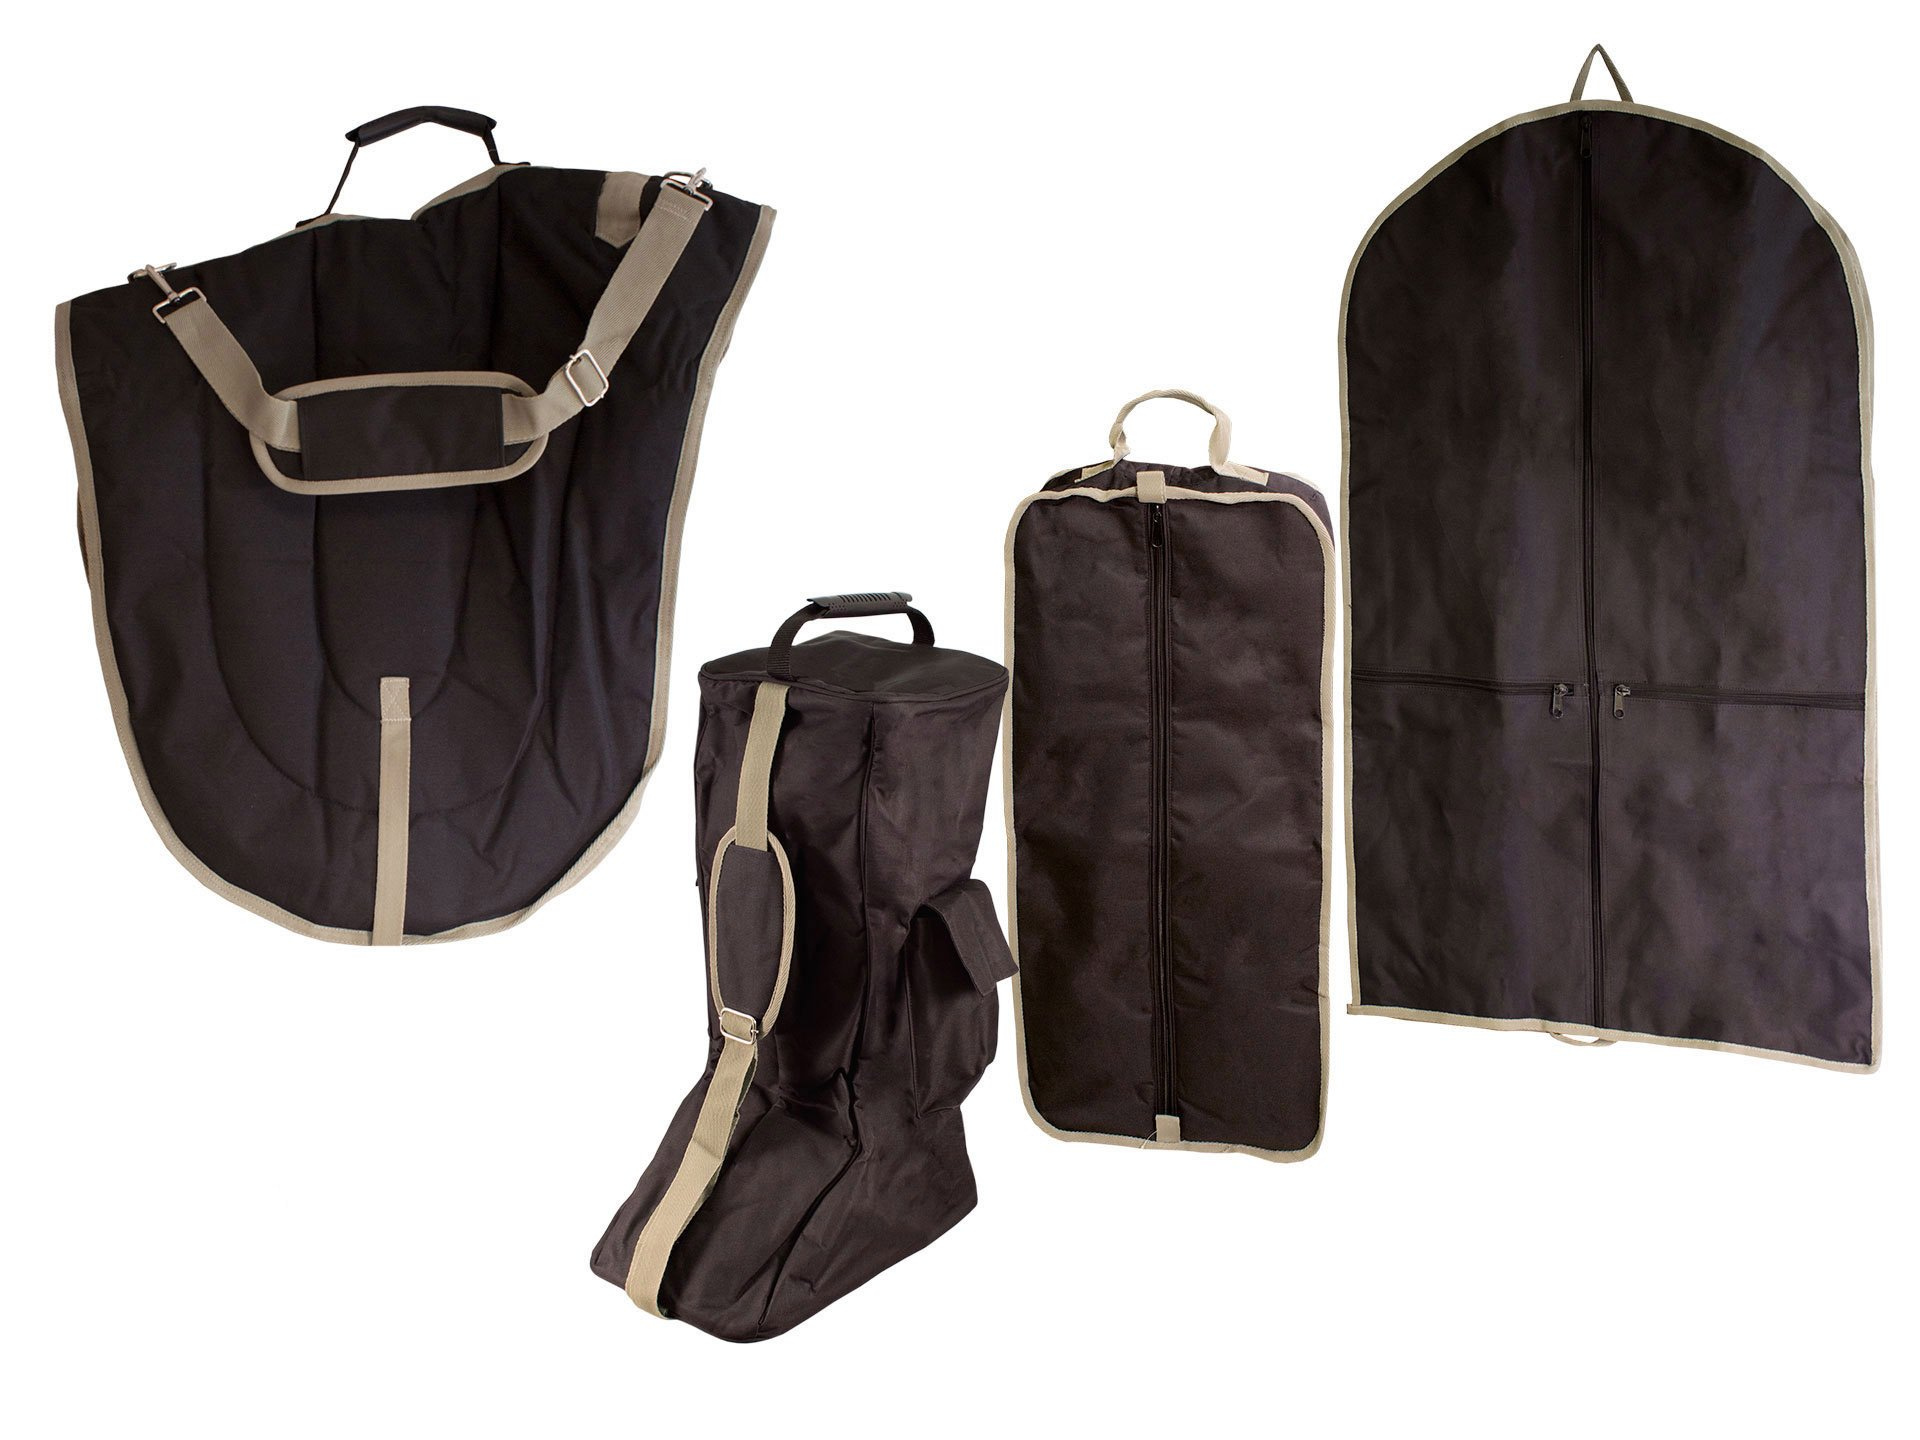 Derby Originals English Dressage Saddle with Bridle and Boot Garment Carry Bags (Set of 4), Black by Derby Originals (Image #1)